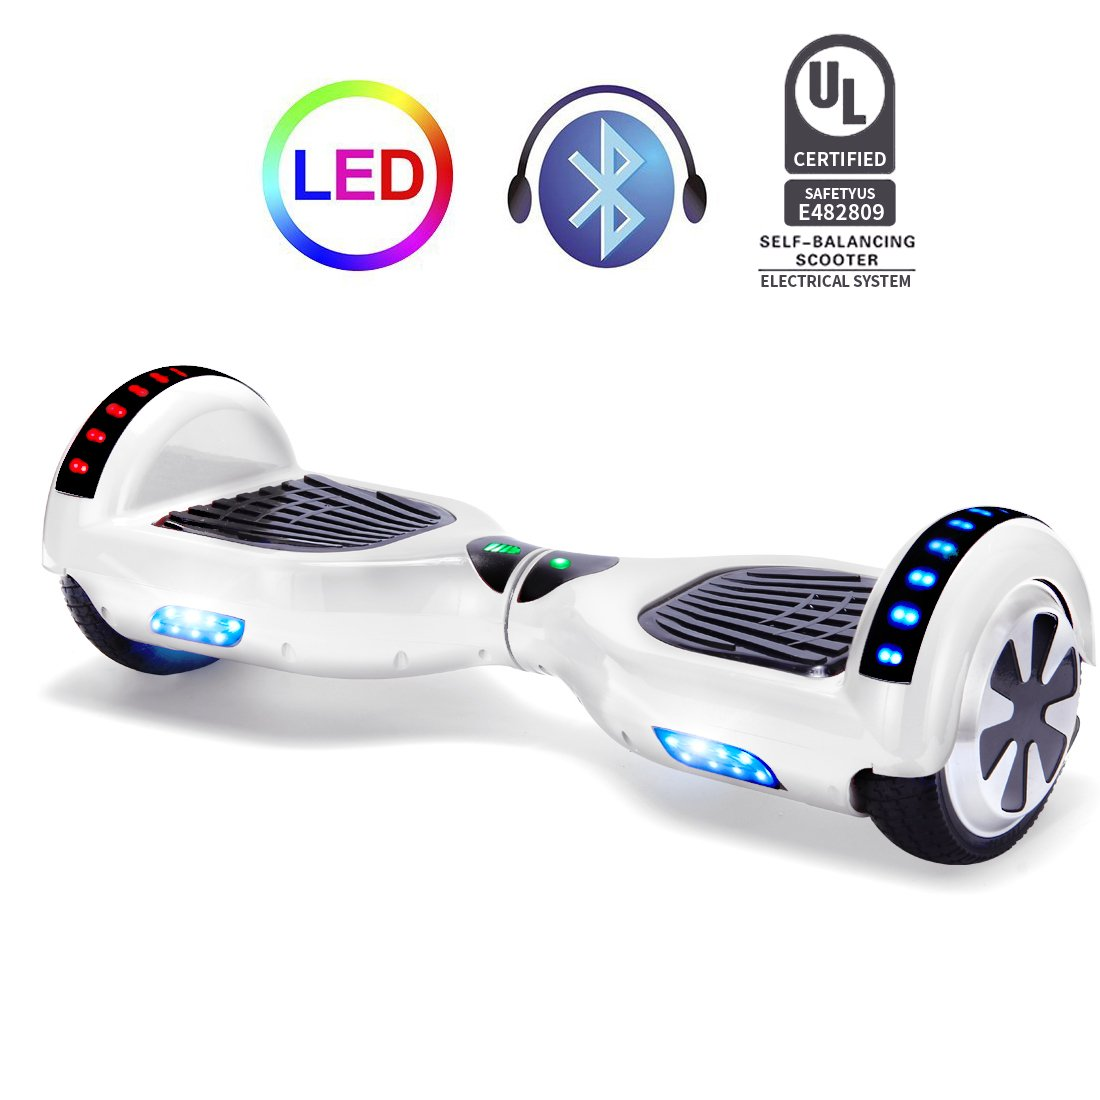 STF-Life UL 2272 Certified Hoverboard with Bluetooth Speaker and LED Lights, Smart Personal Two- Wheel Electric Self Balancing Scooter Transporter for Kids and Adults-White